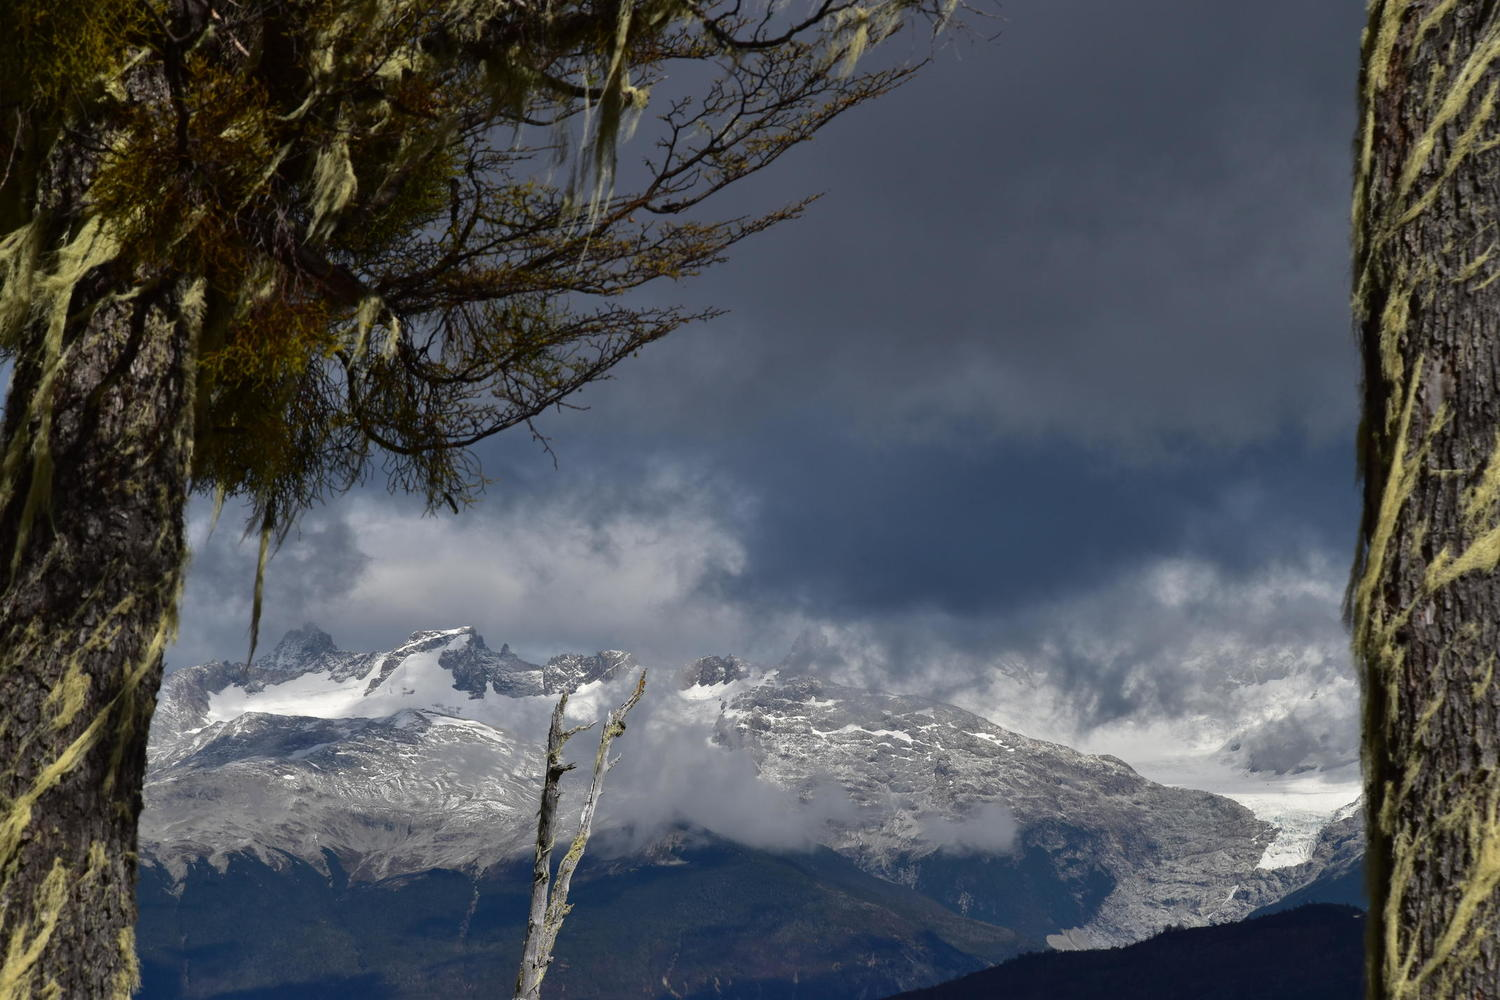 Moody clouds linger over a snow-capped peak along the Carretera